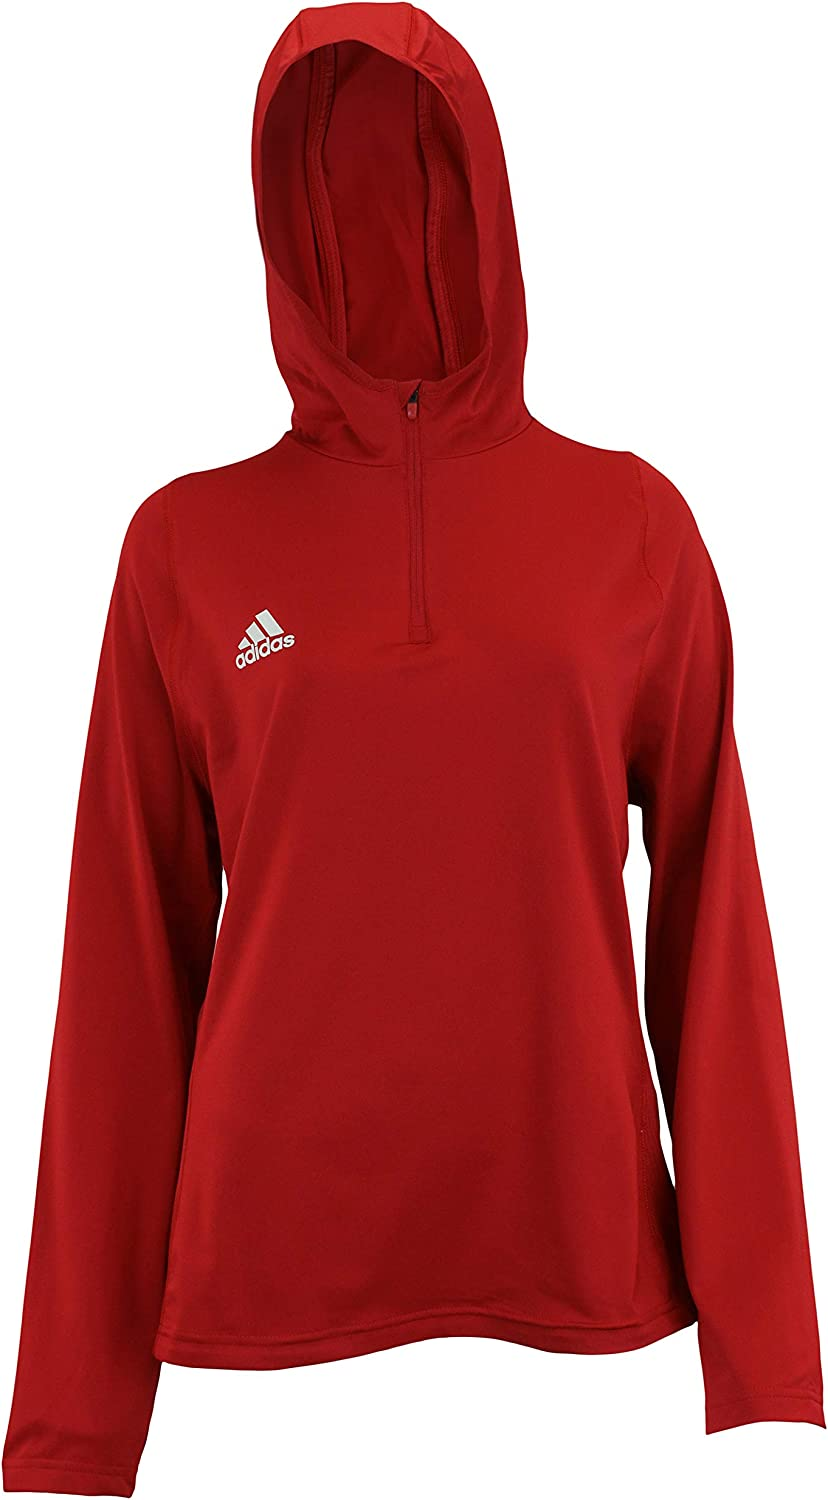 Adidas Game Built Hoodie Women's Training